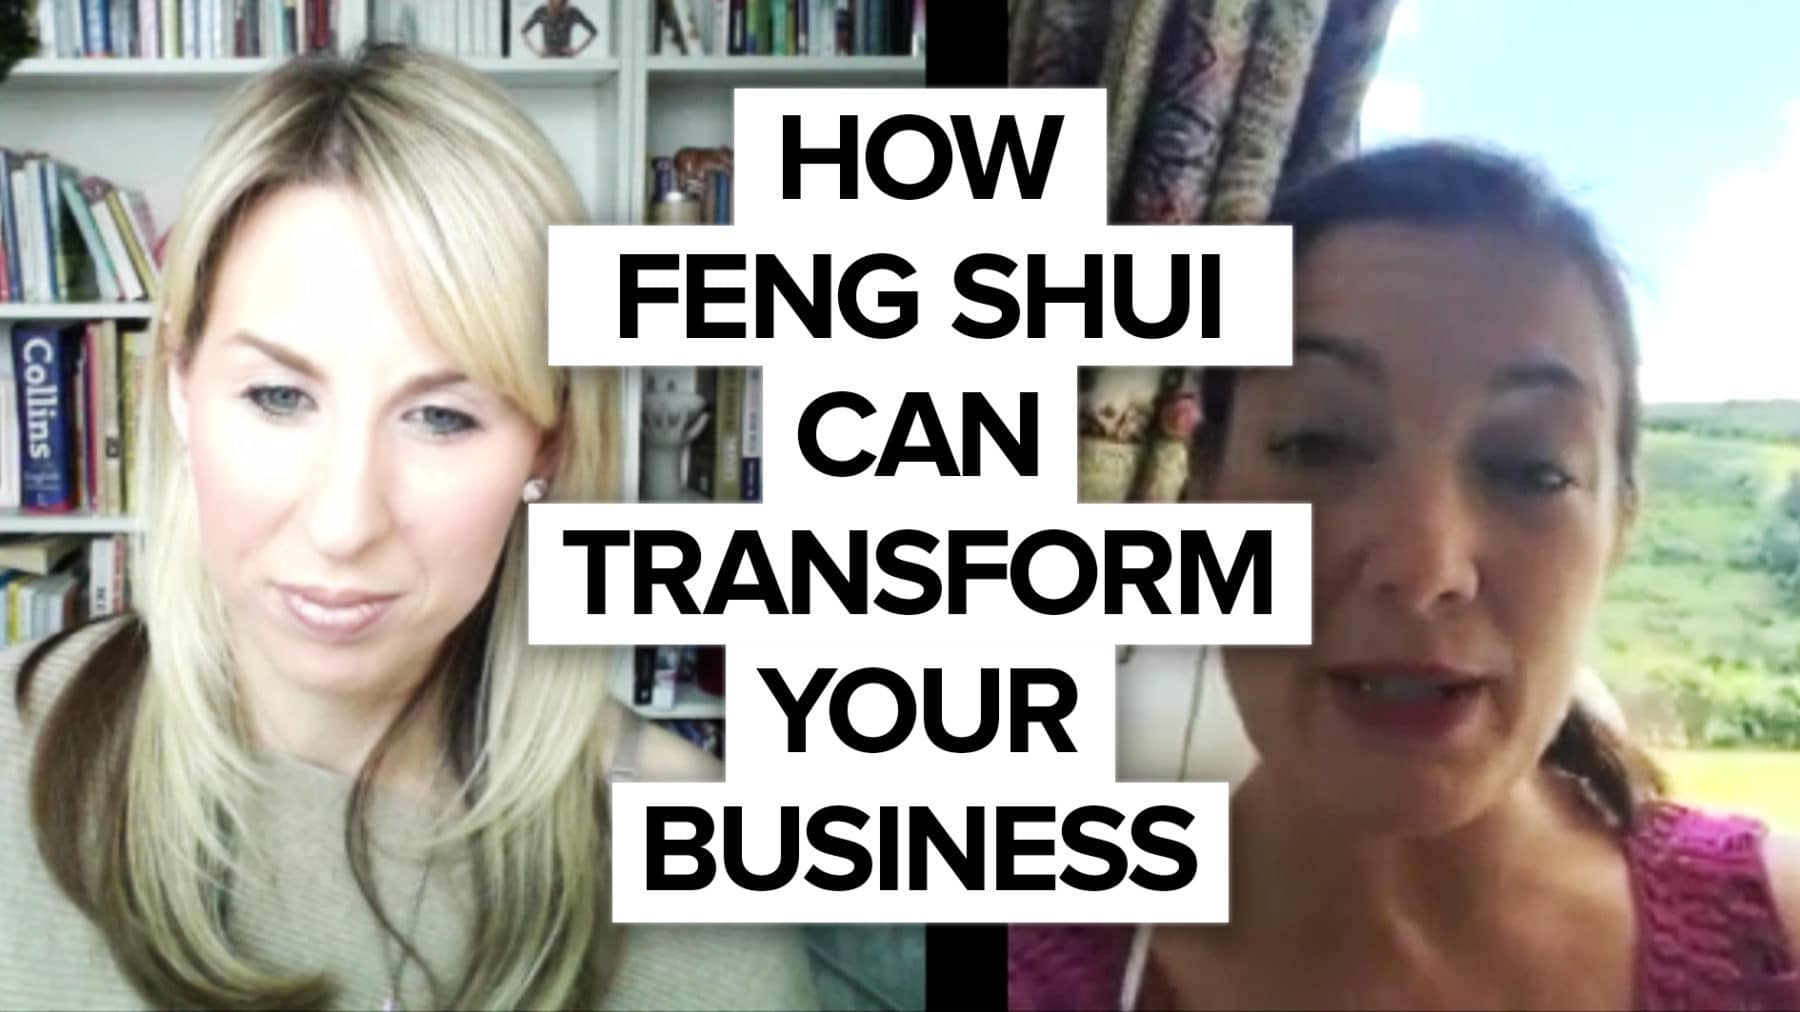 How Feng Shui Can Transform Your Business This Week